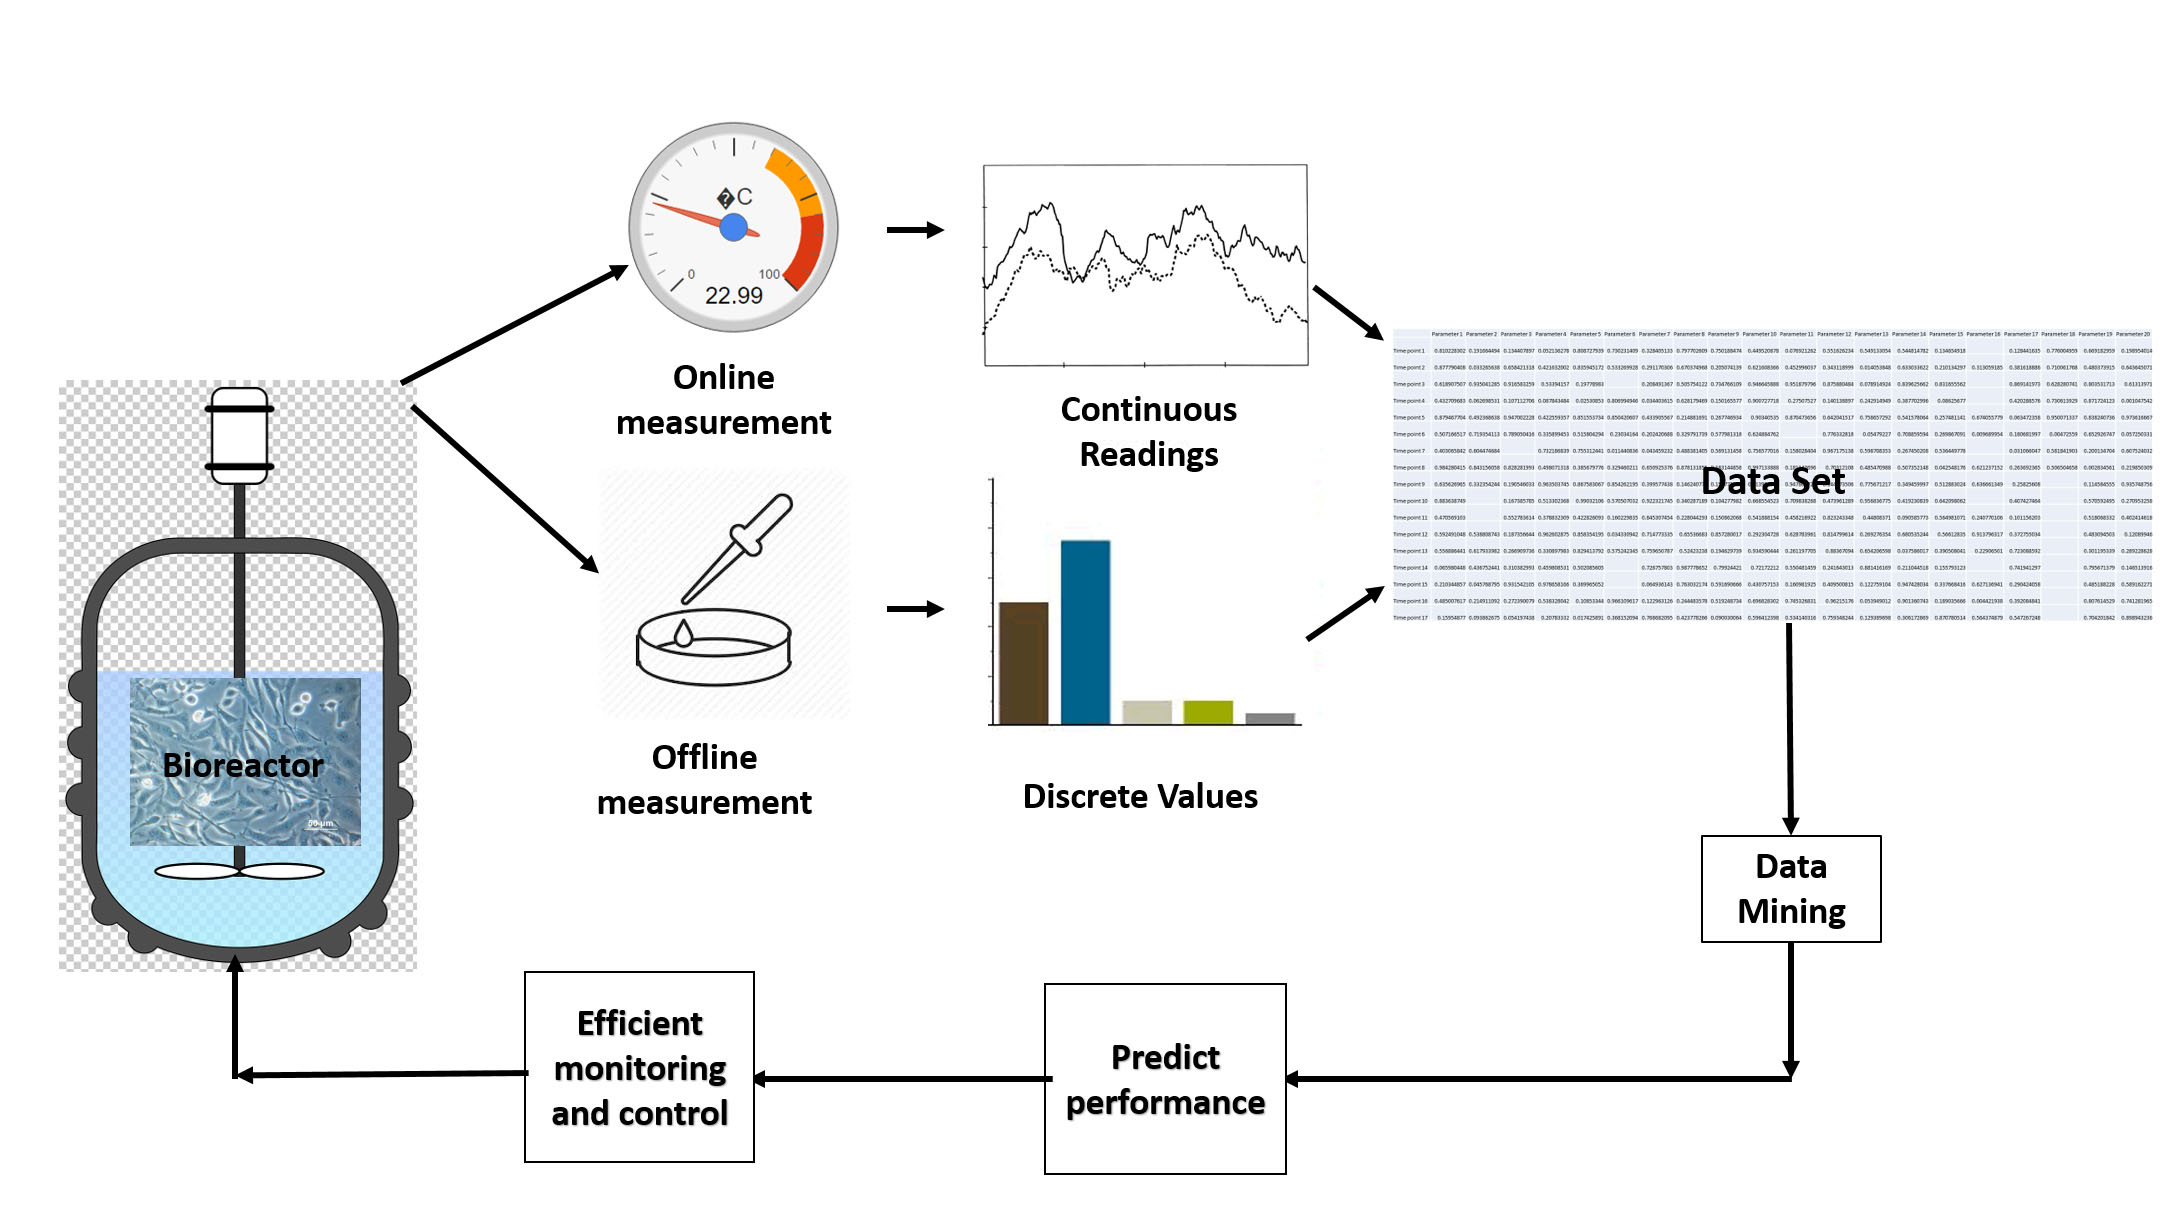 Flow chart showing bioreactor leads to online and offline measurements. Online to continuous readings, offline to discrete values, both of these combine to form data set. Data set leads to data mining, leads to predict performance, leads to efficient monitoring and control which feeds back into the original bioreactor.